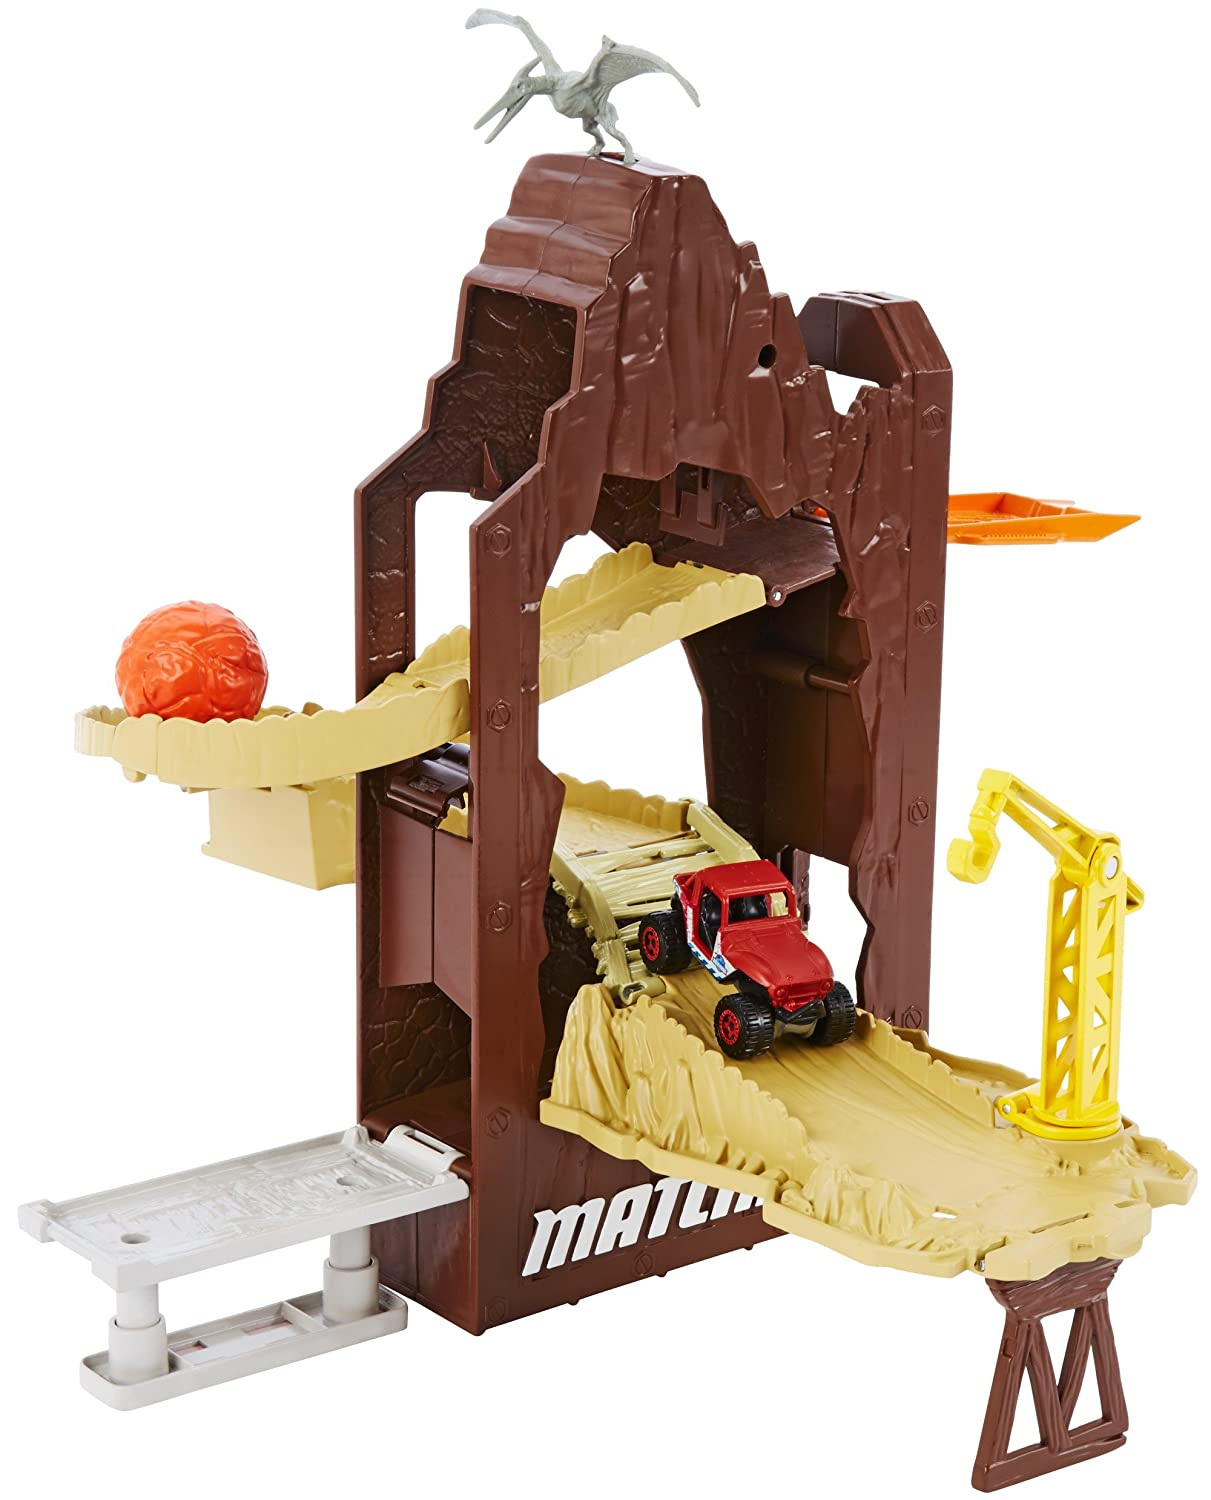 A Matchbox Jurassic World Portable Island Escape Playset